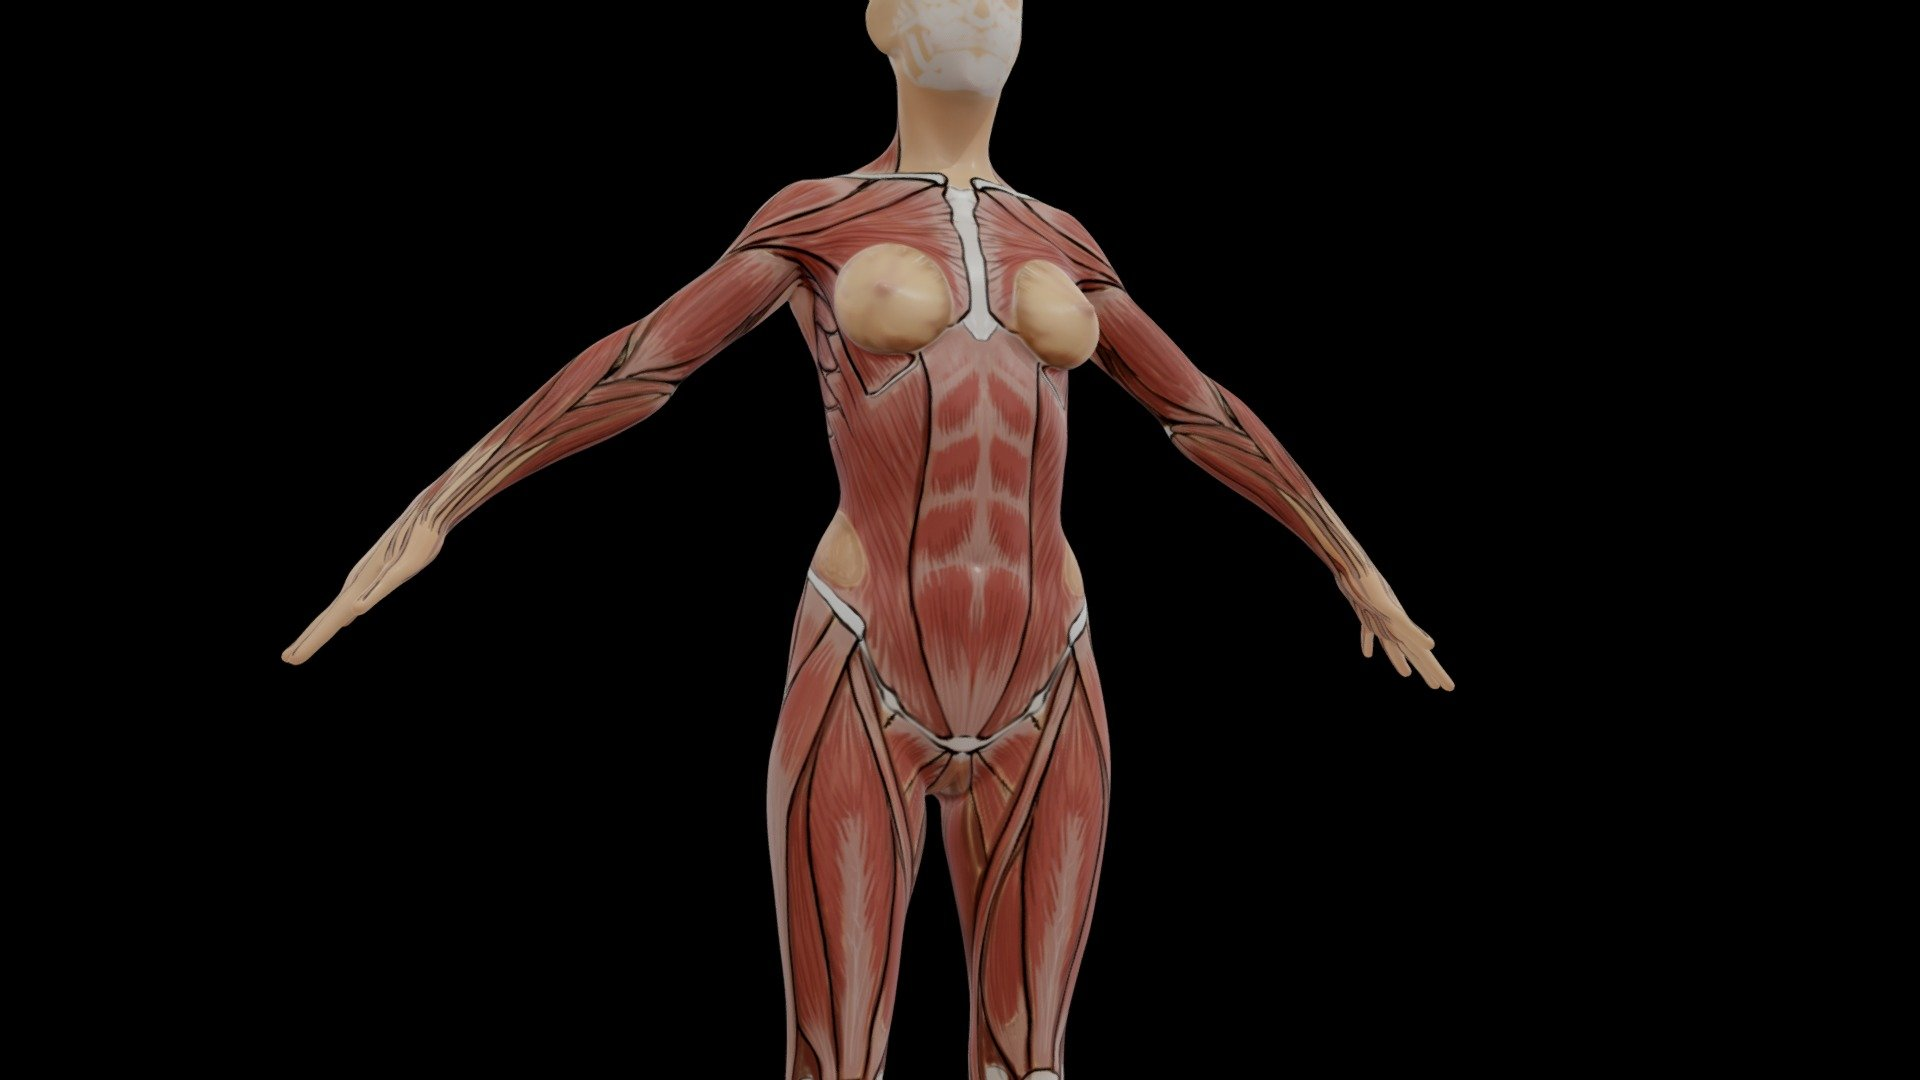 Female Muscles Reference 3d Model By Asknarin Asknarin 2b919e7 Sketchfab